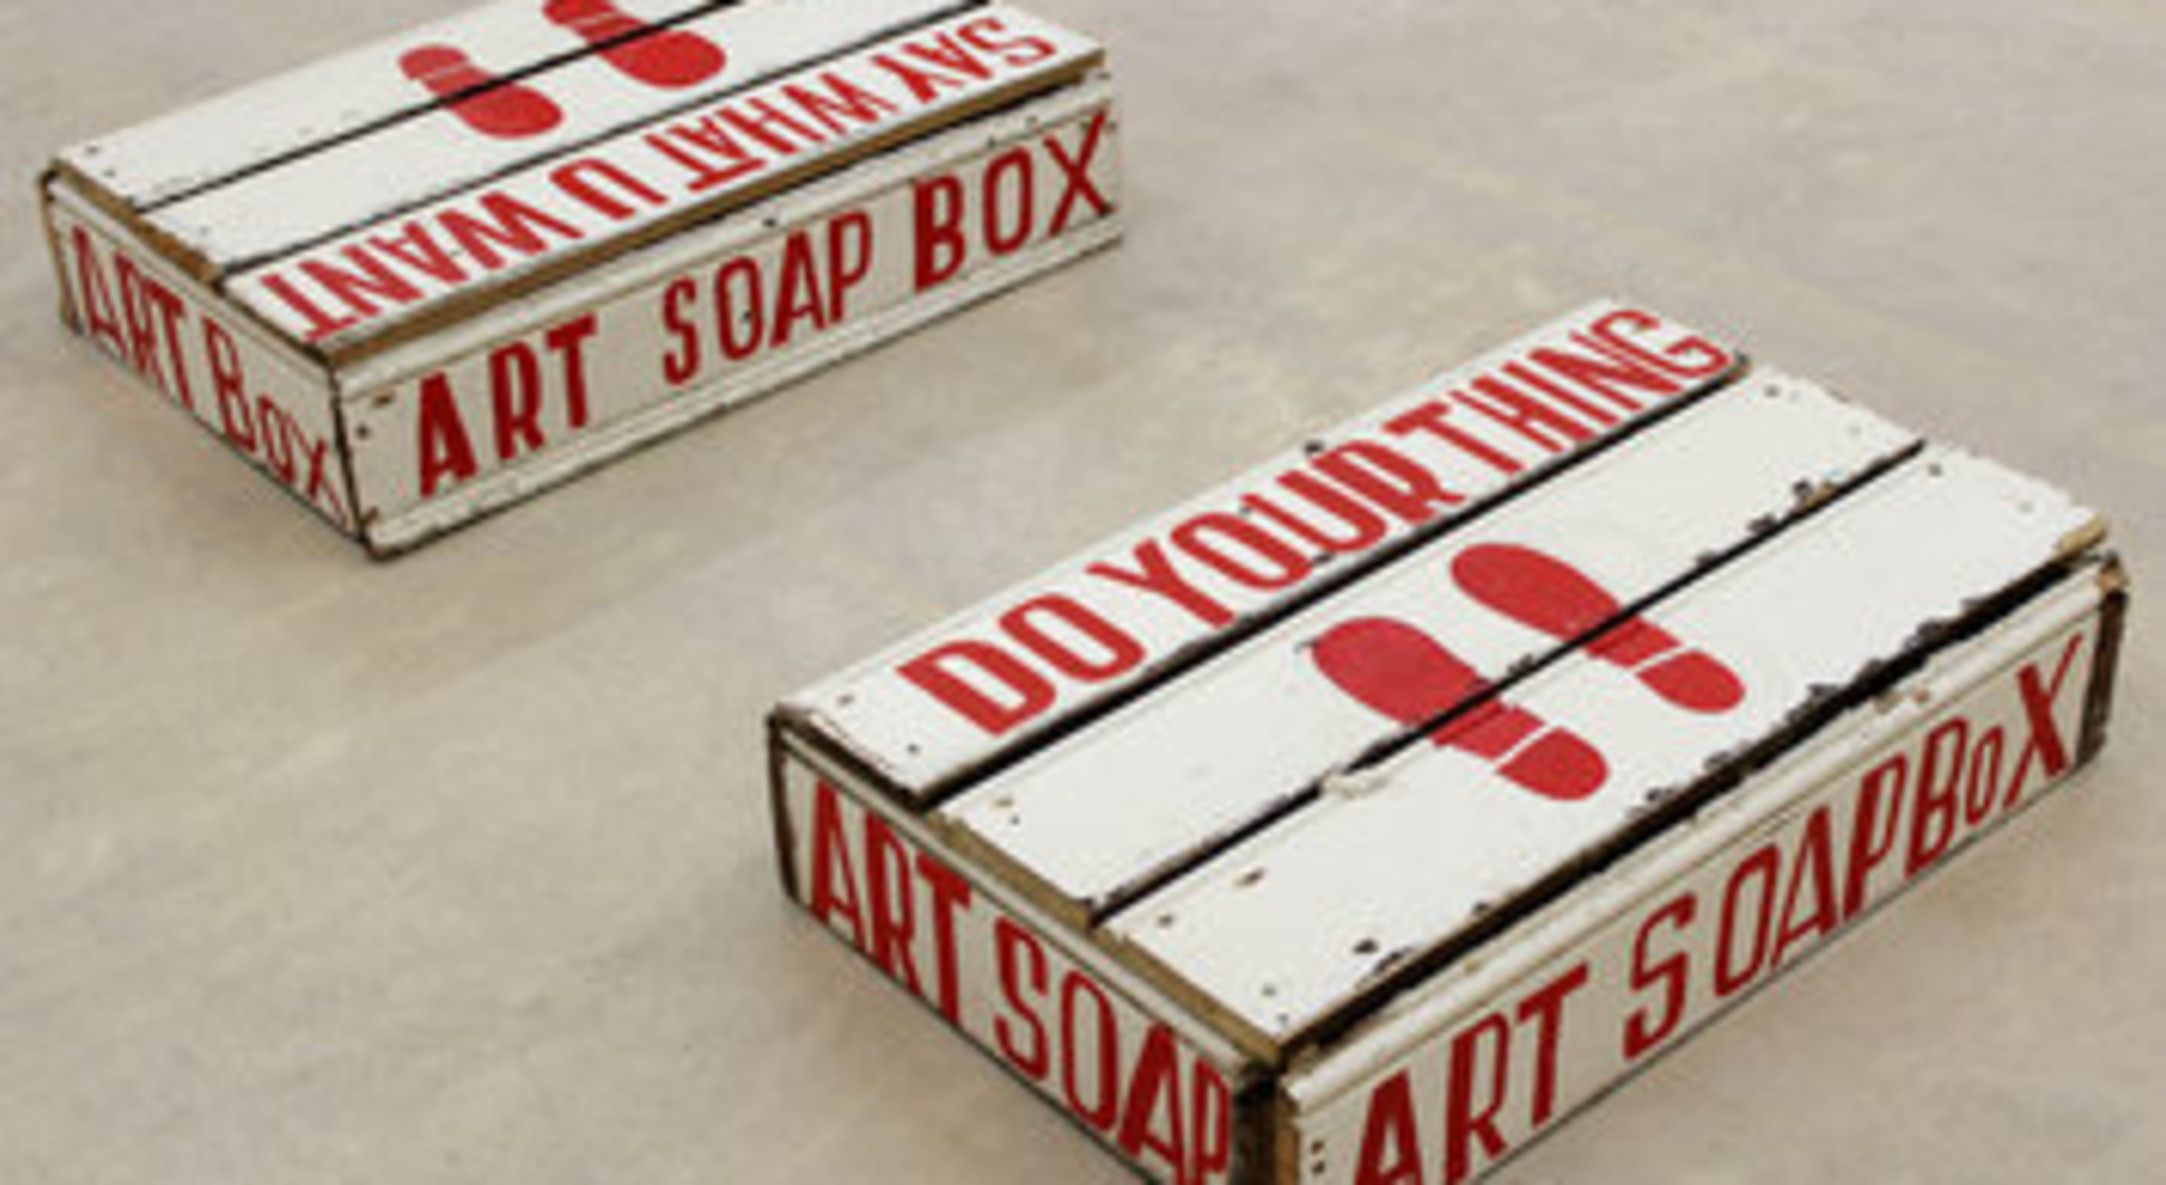 Bob and Roberta Smith, Art Soapbox 1 & 2, 2012, signwriter's paint on board, 20 x 52 x 83 cm, 7 7/8 x 20 1/2 x 32 5/8 in